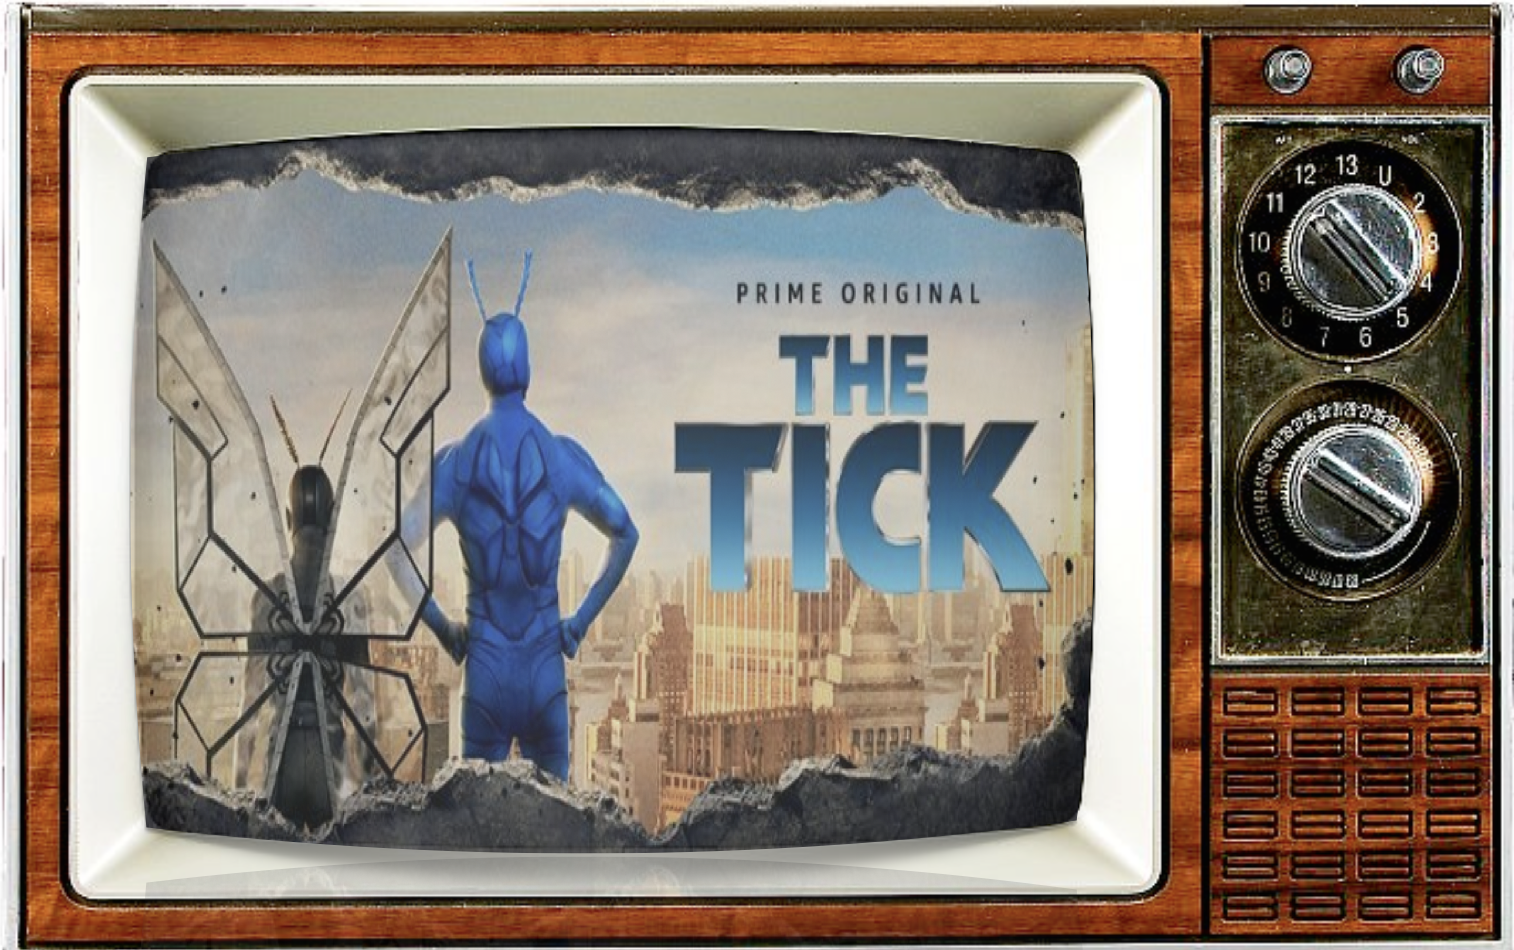 SMC Episode 80: THE TICK, A Hero Will Land Again! With Peter Serafinowicz and Griffin Newman